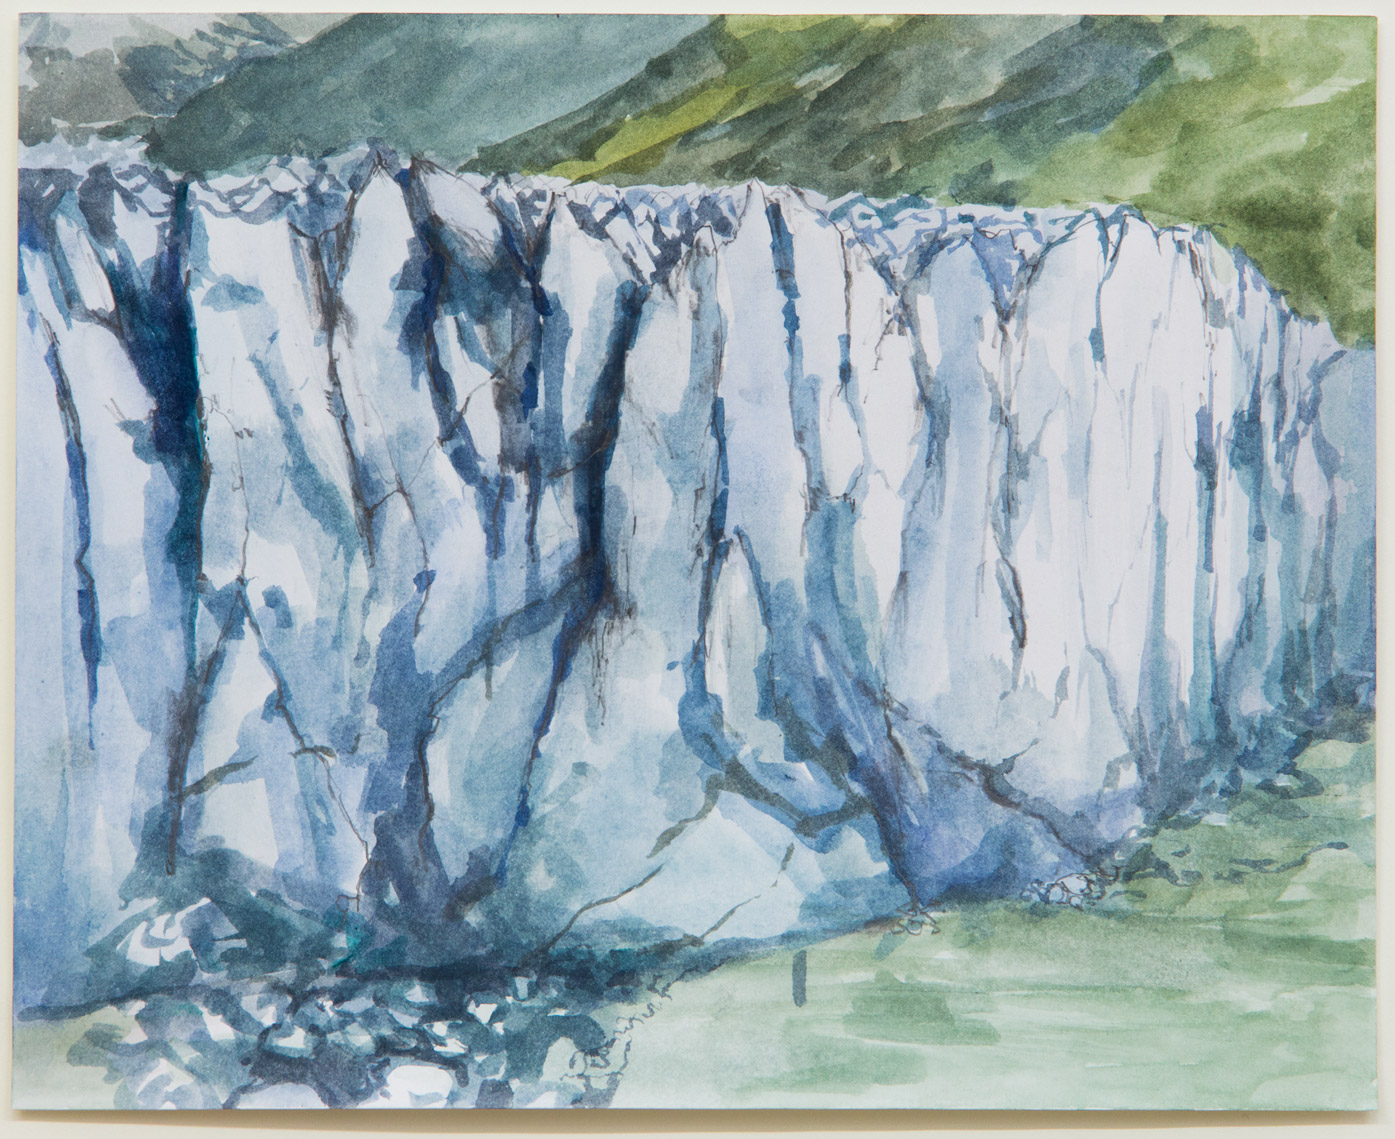 Glacier Perito Moreno; 28 x 21 cm; watercolour, ink and pencil on paper; 2018